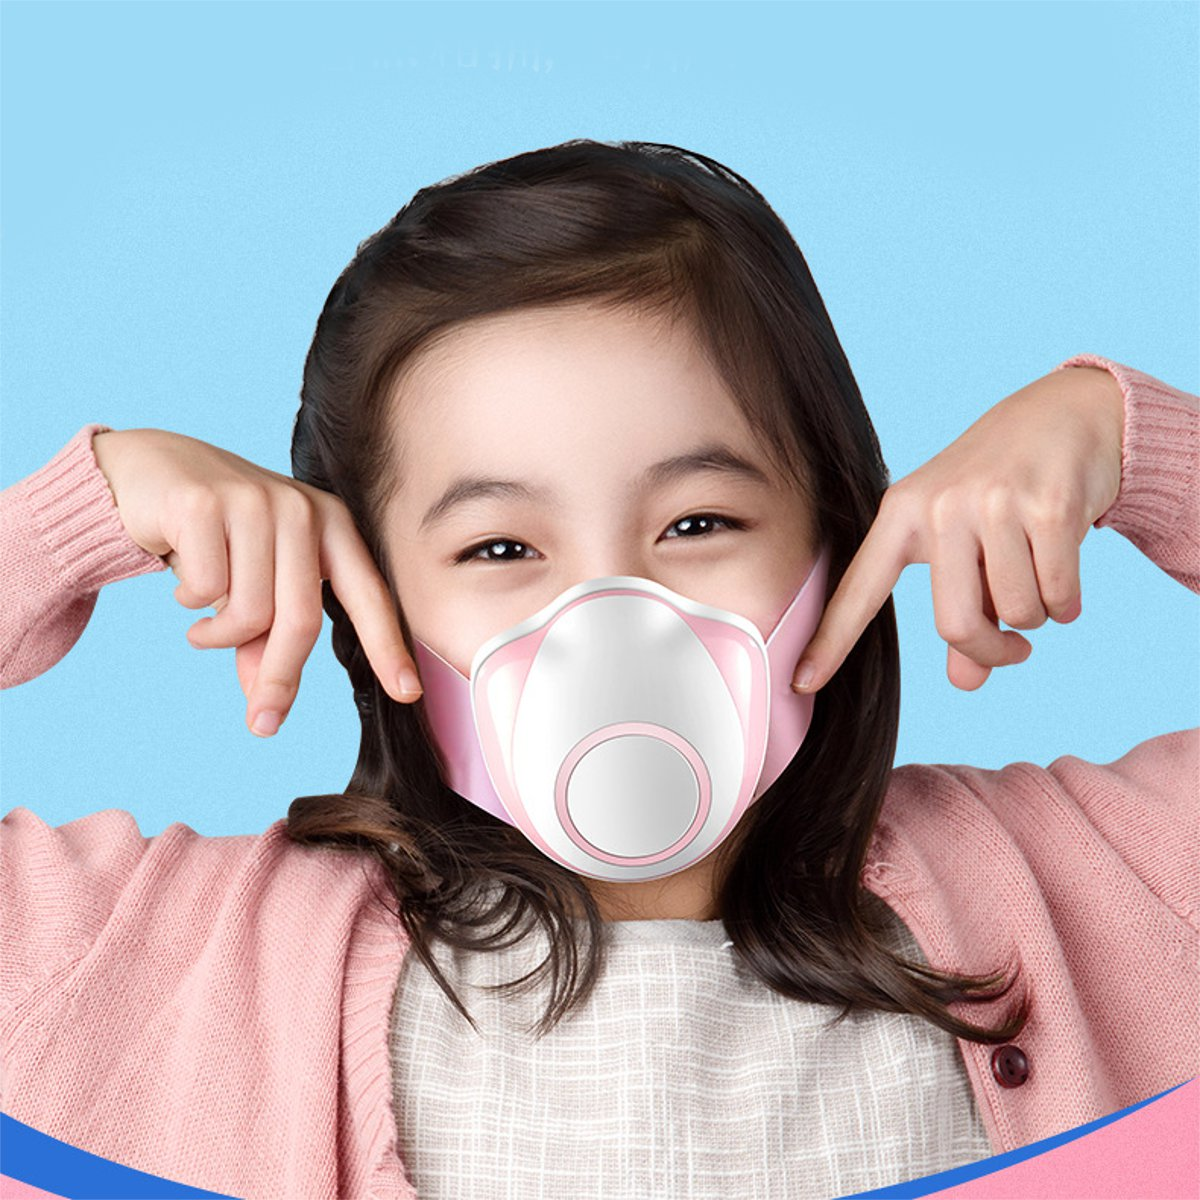 Children Smart Electric Face Mask Air Purifying Anti Dust Pollution Fresh Air Supply PM2.5 With Breathing Air Valve Dust Mask